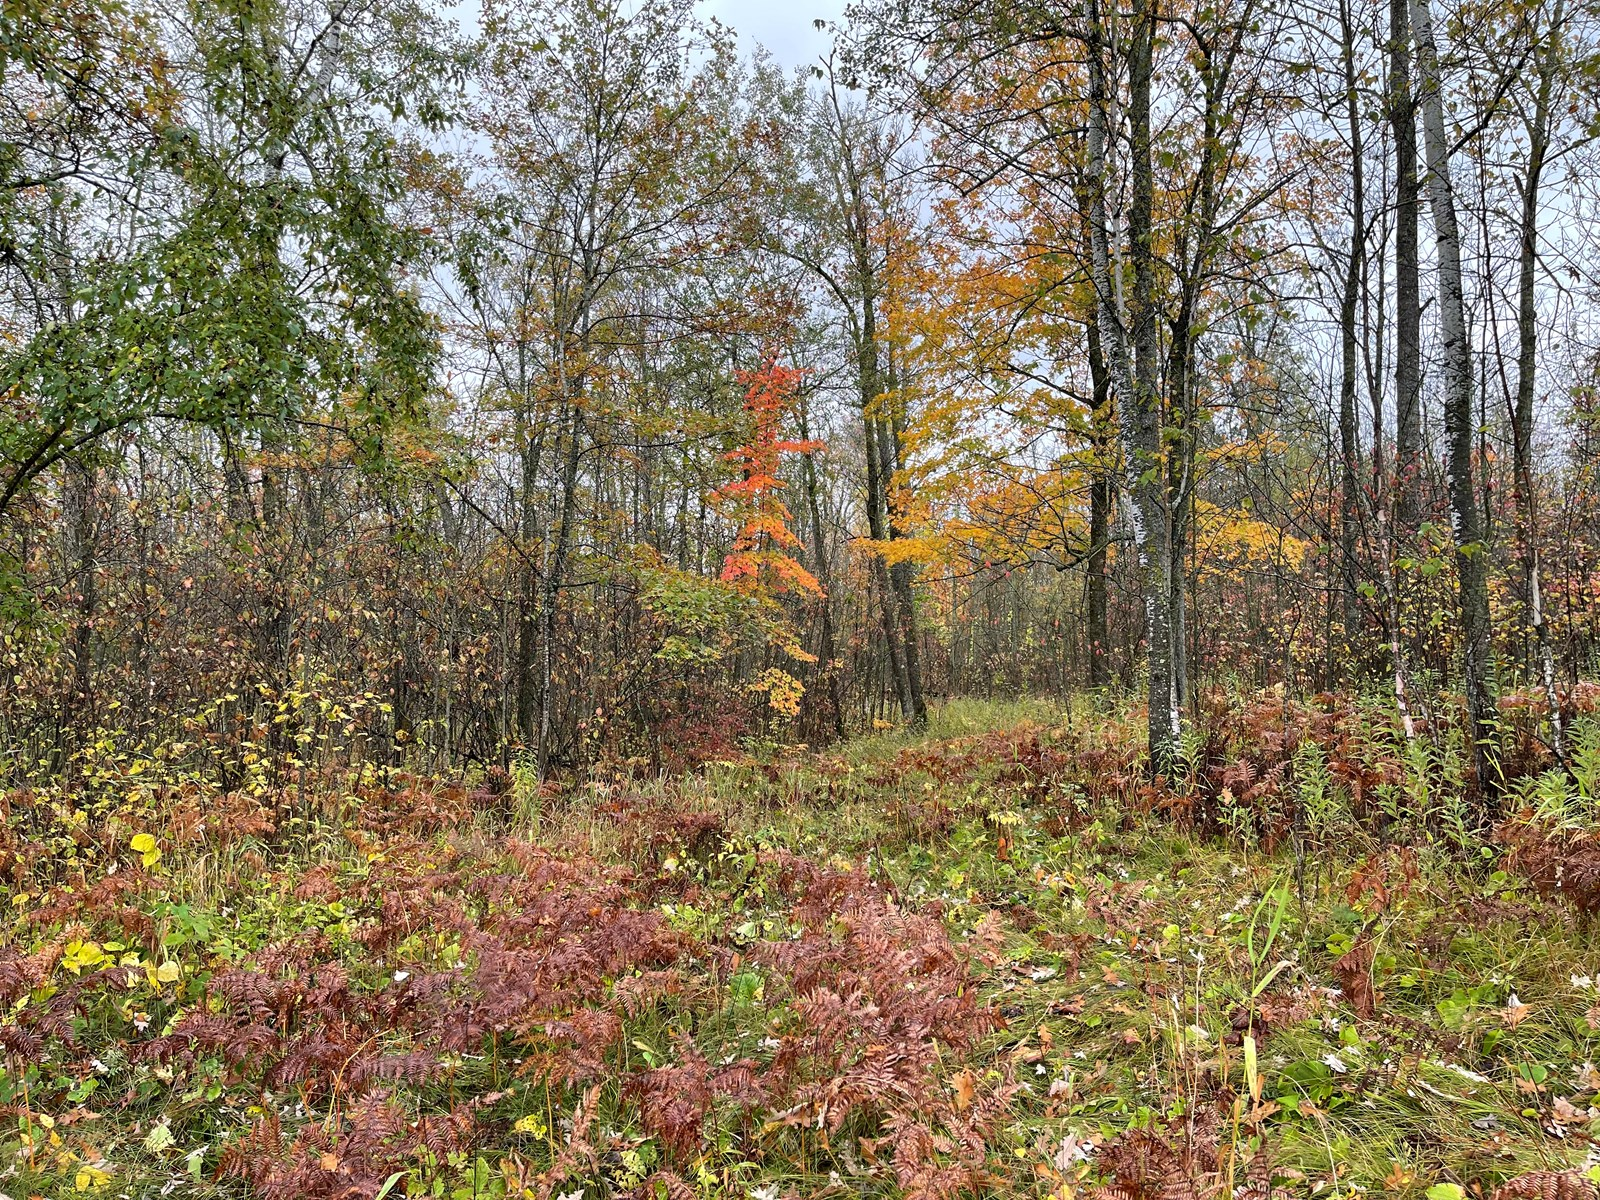 Wooded Acreage for Sale Bordering State Land Near Mille Lacs